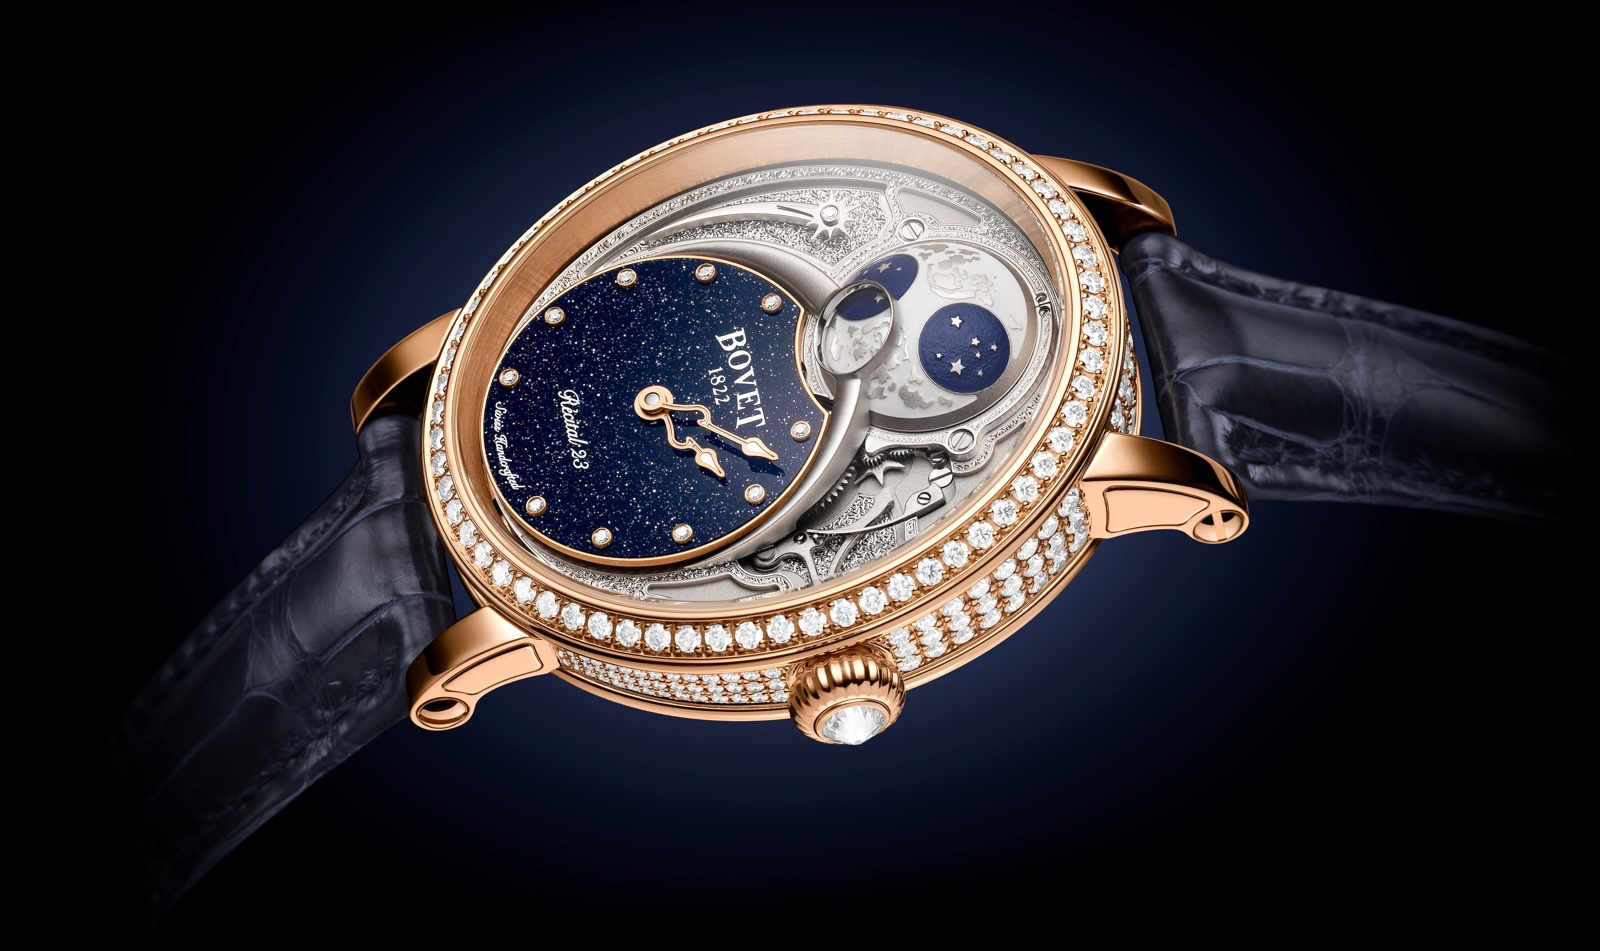 Bovet 1822 Récital 23 Collection SIHH 2019